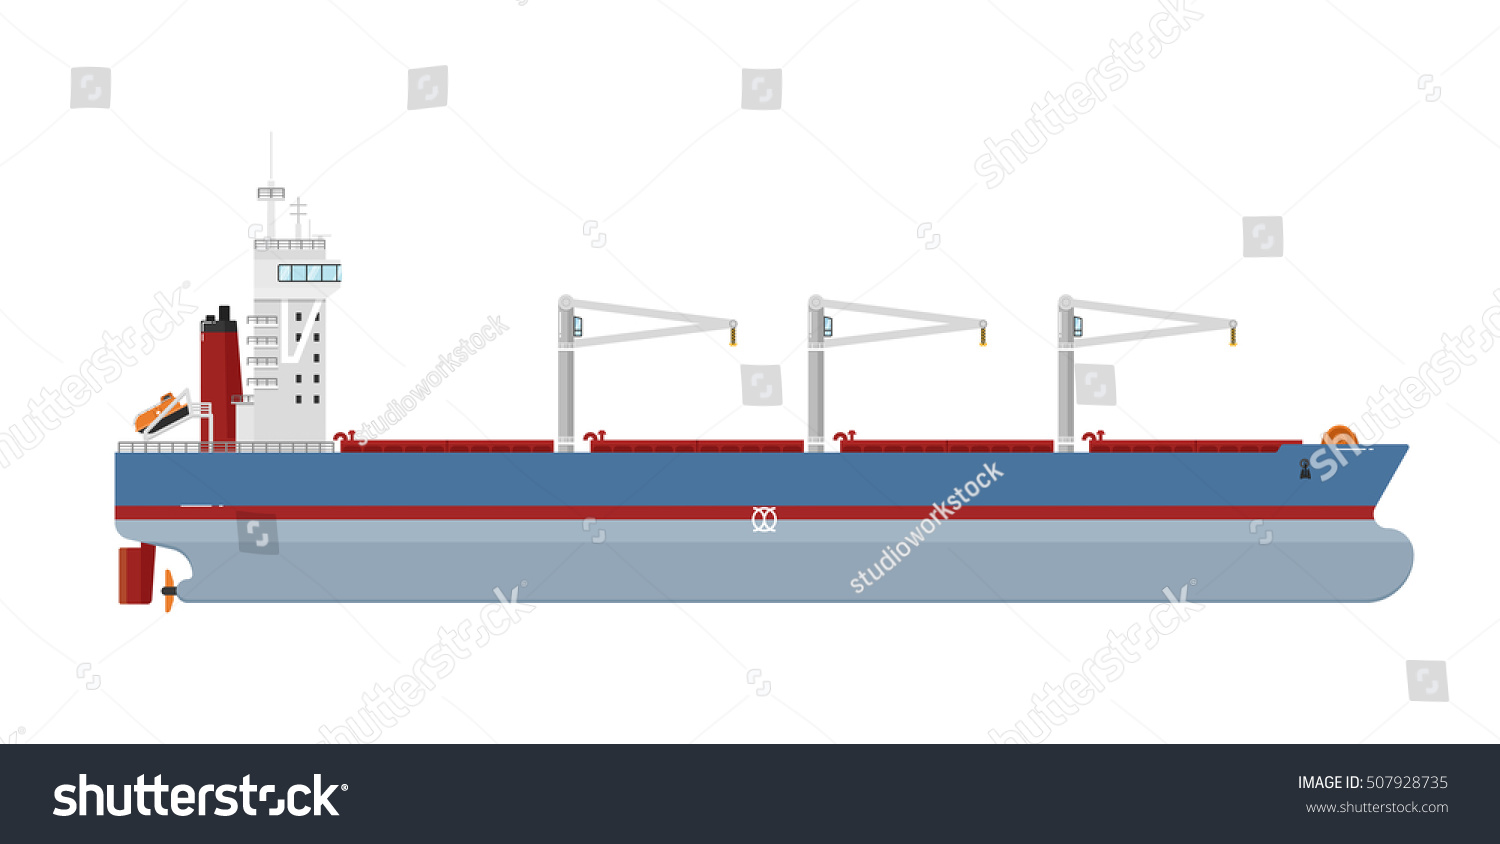 hight resolution of freight ship diagram wiring diagram official cargo ship diagram wiring diagramfreight ship diagram wiring diagramcargo ship